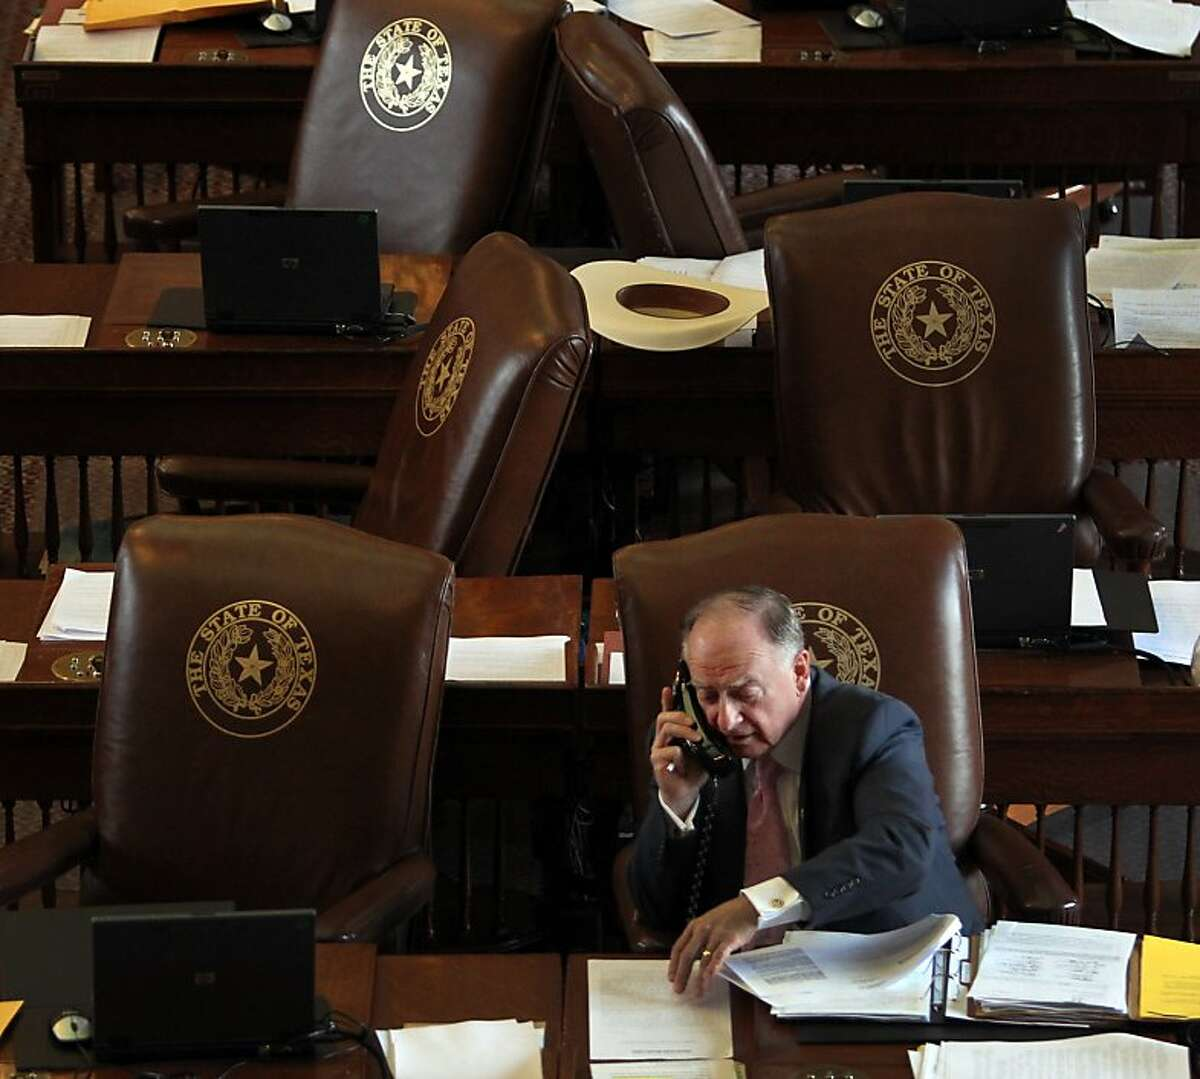 State representative Dan Flynn, R-Van, wants the attorney general's office to investigate Houston-based Harmony Public Schools, a charter school network under attack by the Republic of Turkey. (AP Photo/The Dallas Morning News, Louis DeLuca)